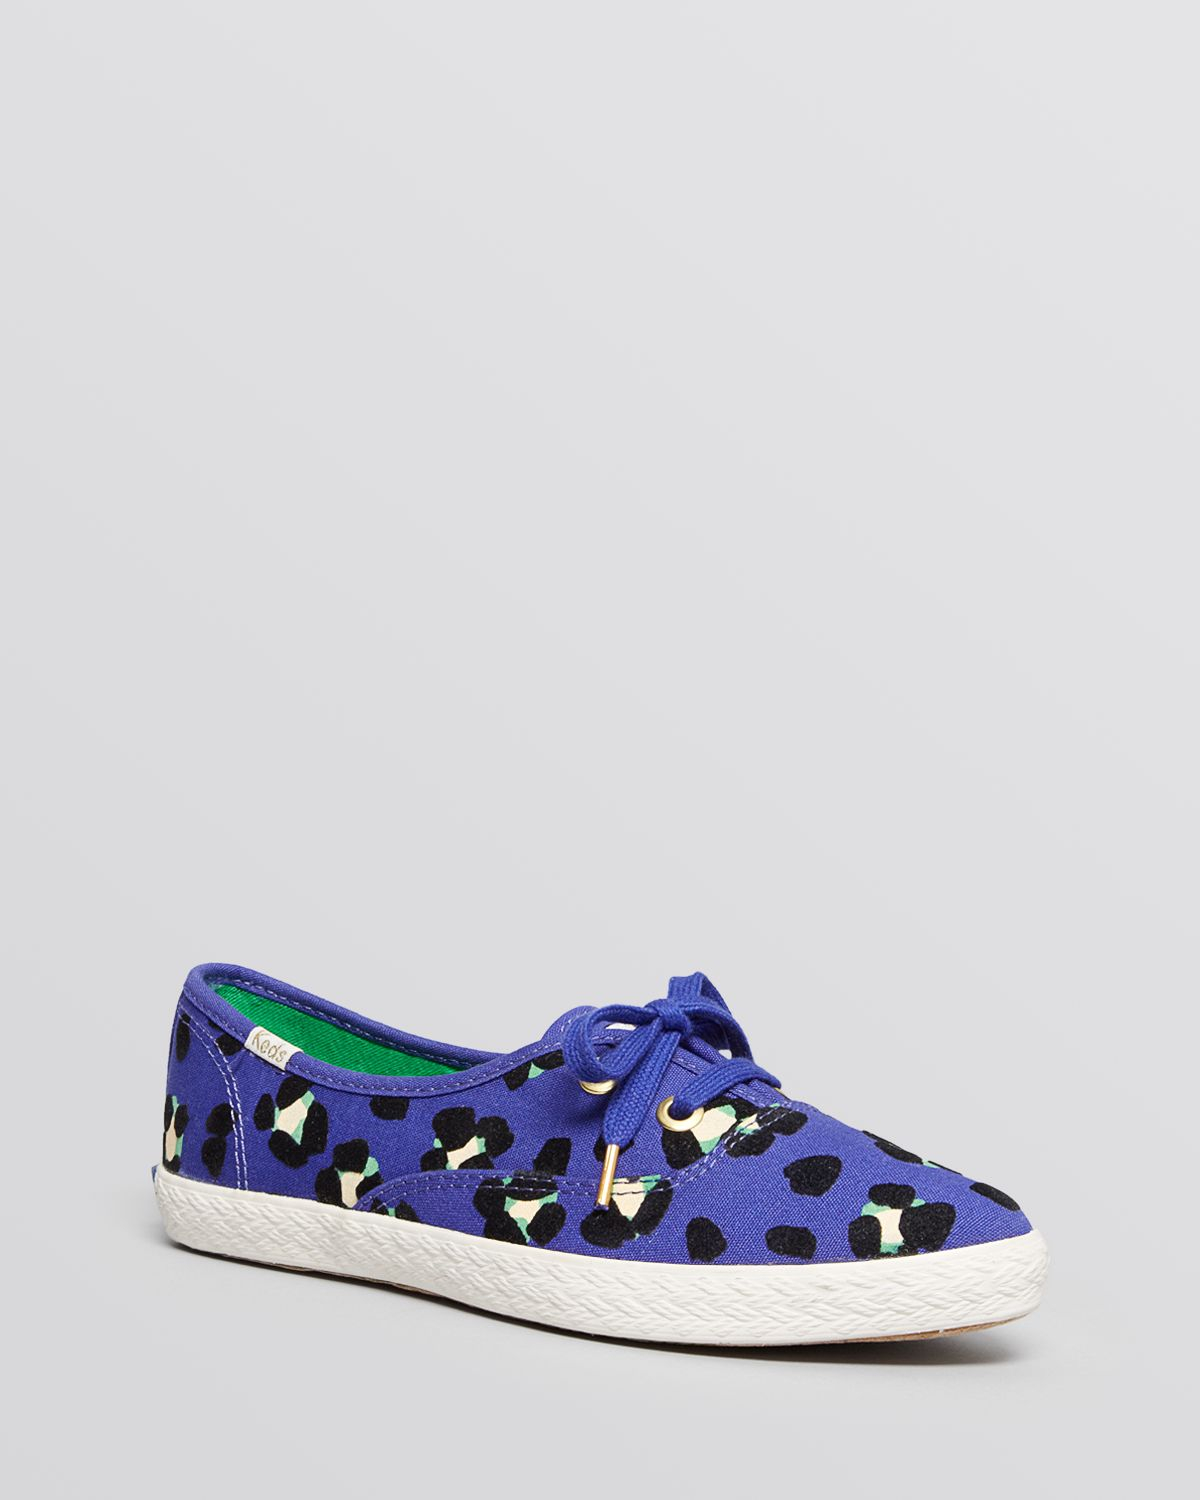 c6f438847bfa Kate Spade Keds® For Pointed Toe Flat Lace Up Sneakers - Pointer Leo ...